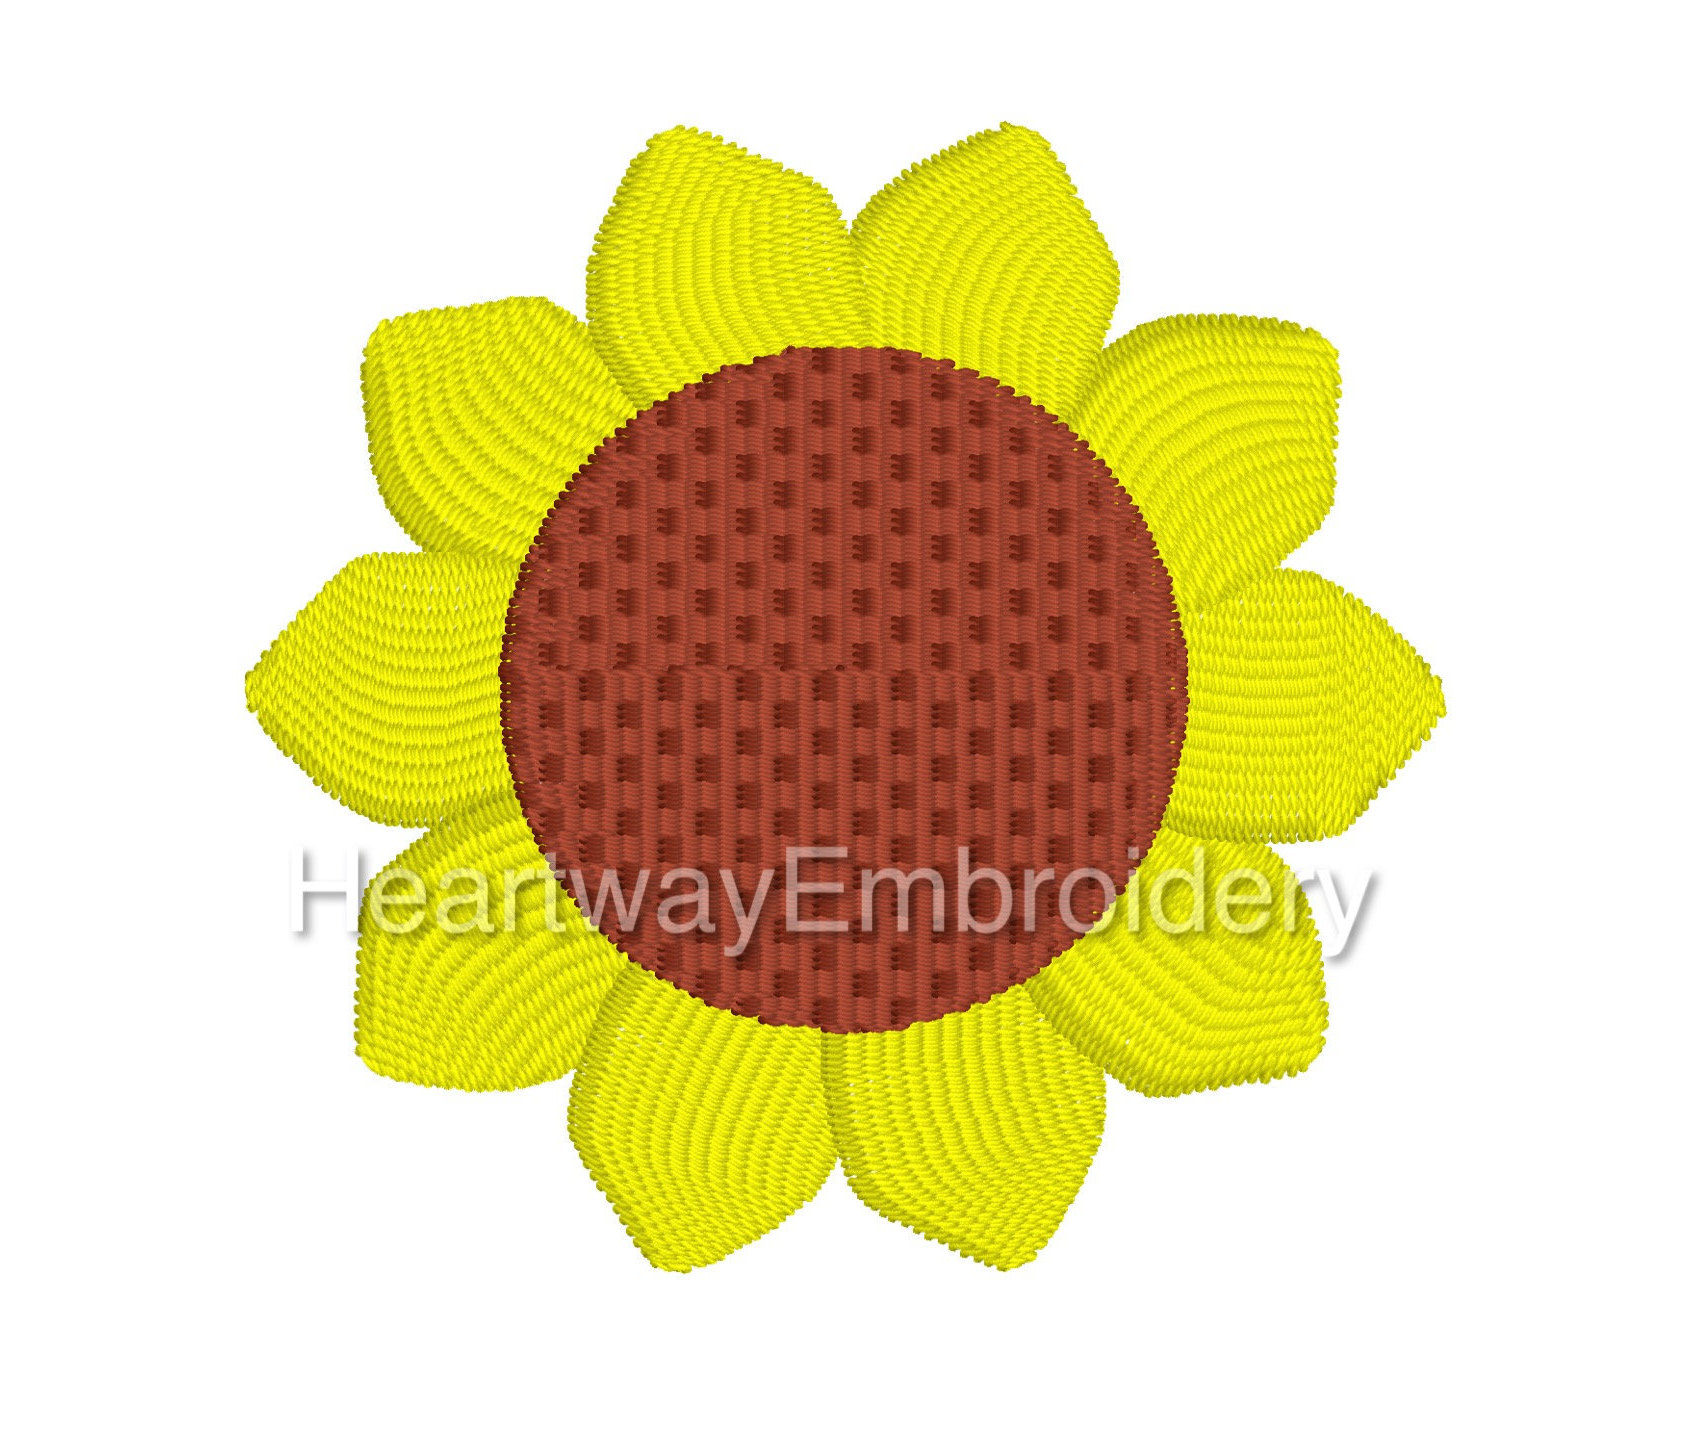 Sunflower Embroidery Pattern Mini Sunflower Embroidery Design 3 Sizes Filled Embroidery Design Mini Embroidery Design Yellow Flower Embroidery Sun Flower Embroidery